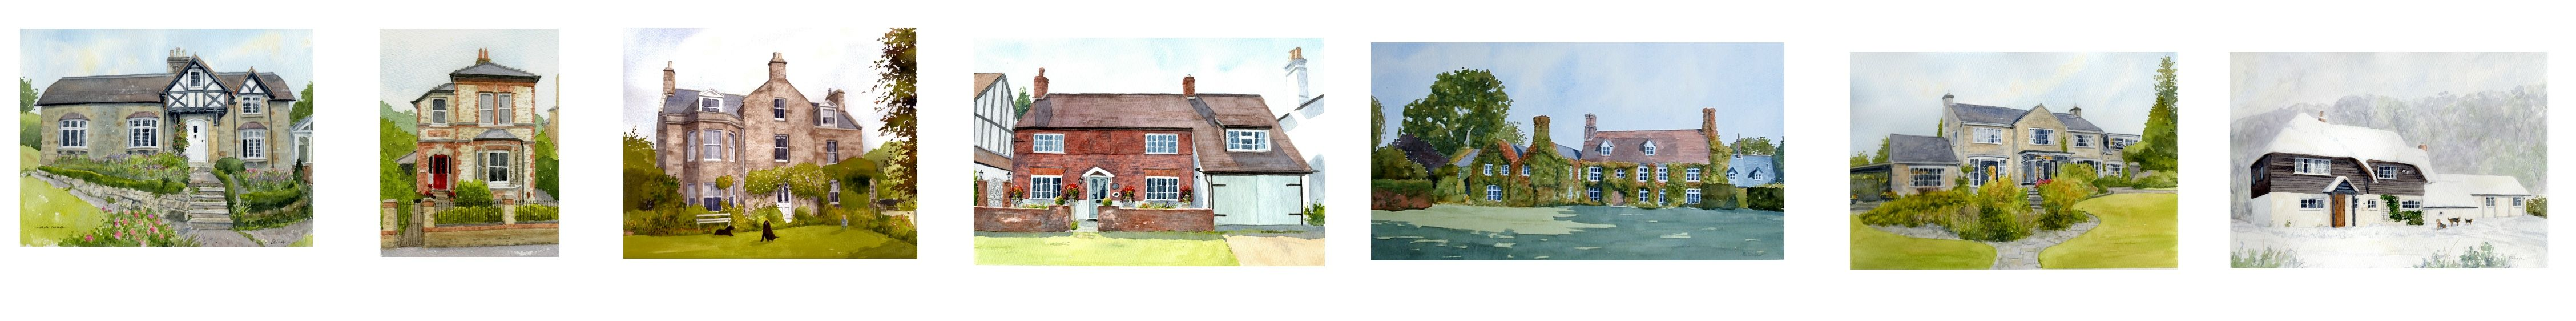 Rob Thorpe, House Portraits in Watercolour